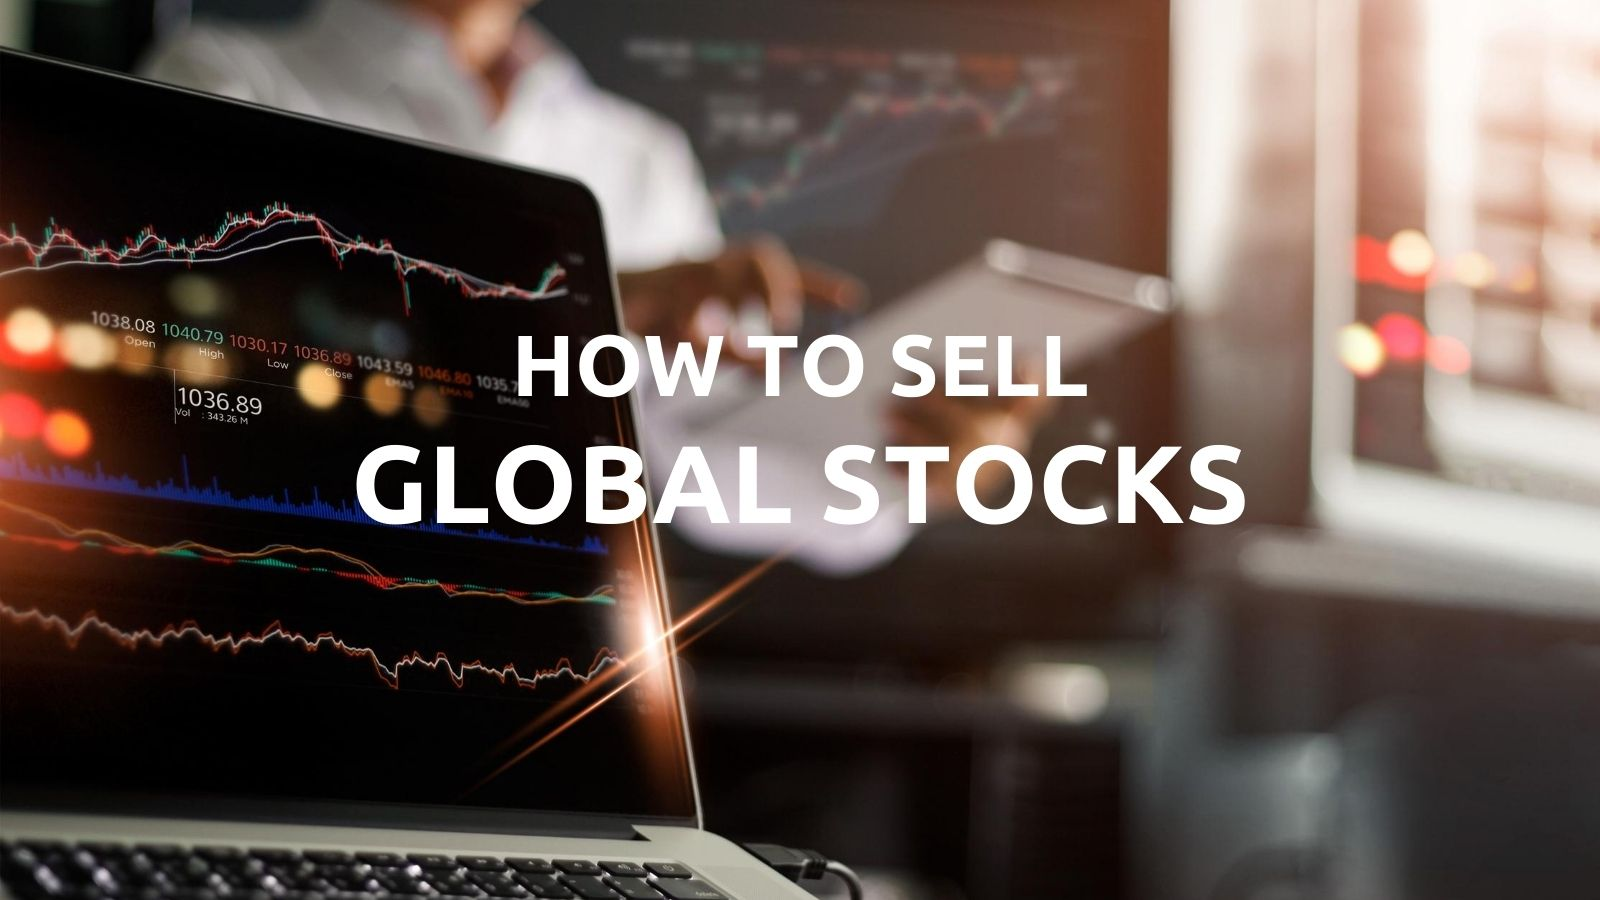 how to sell global stocks online